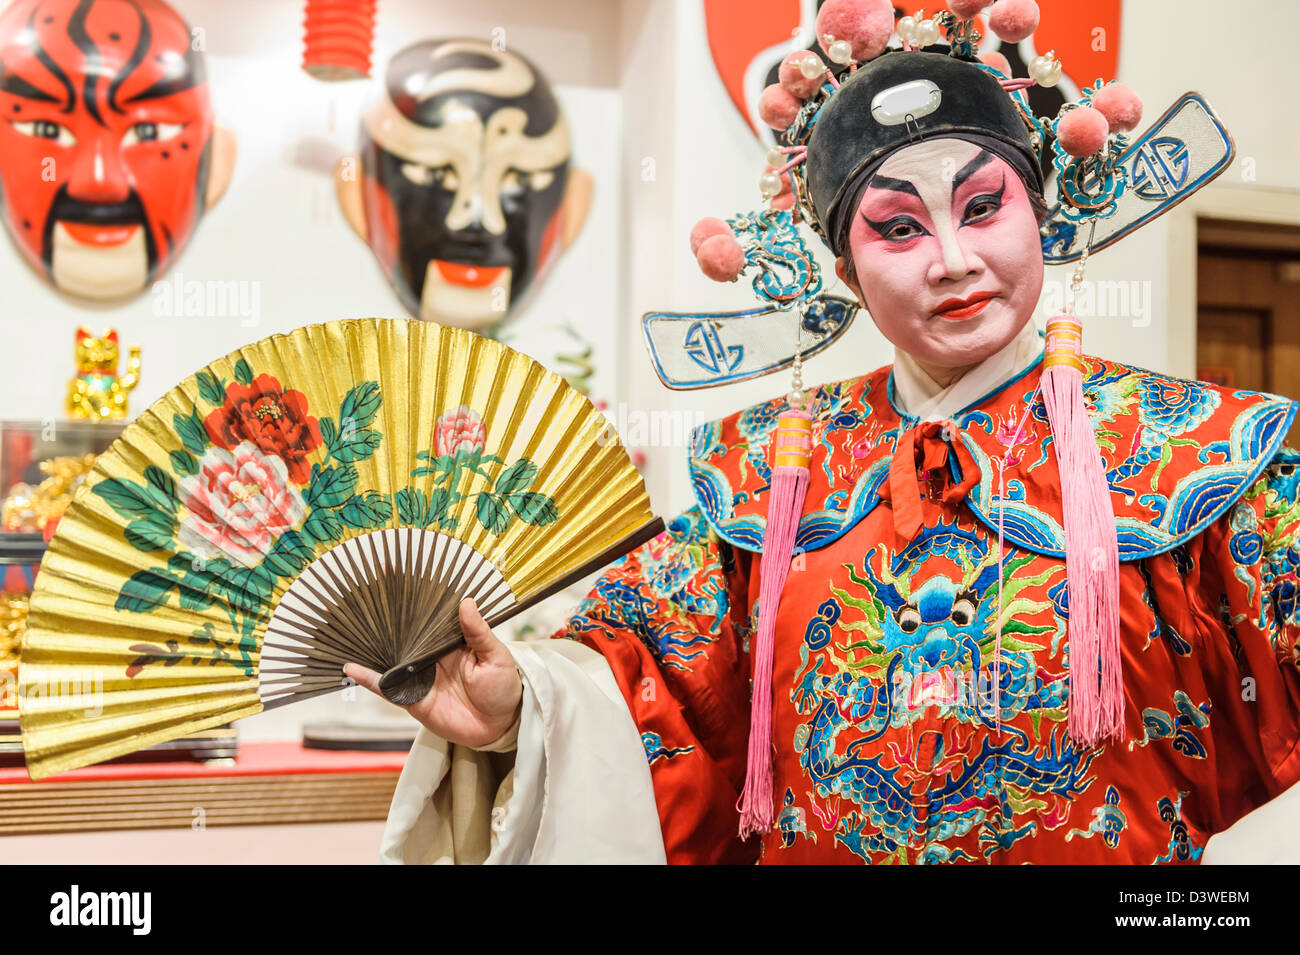 Chinesse Opera Singer dressed for performing, Singapur, Asia - Stock Image